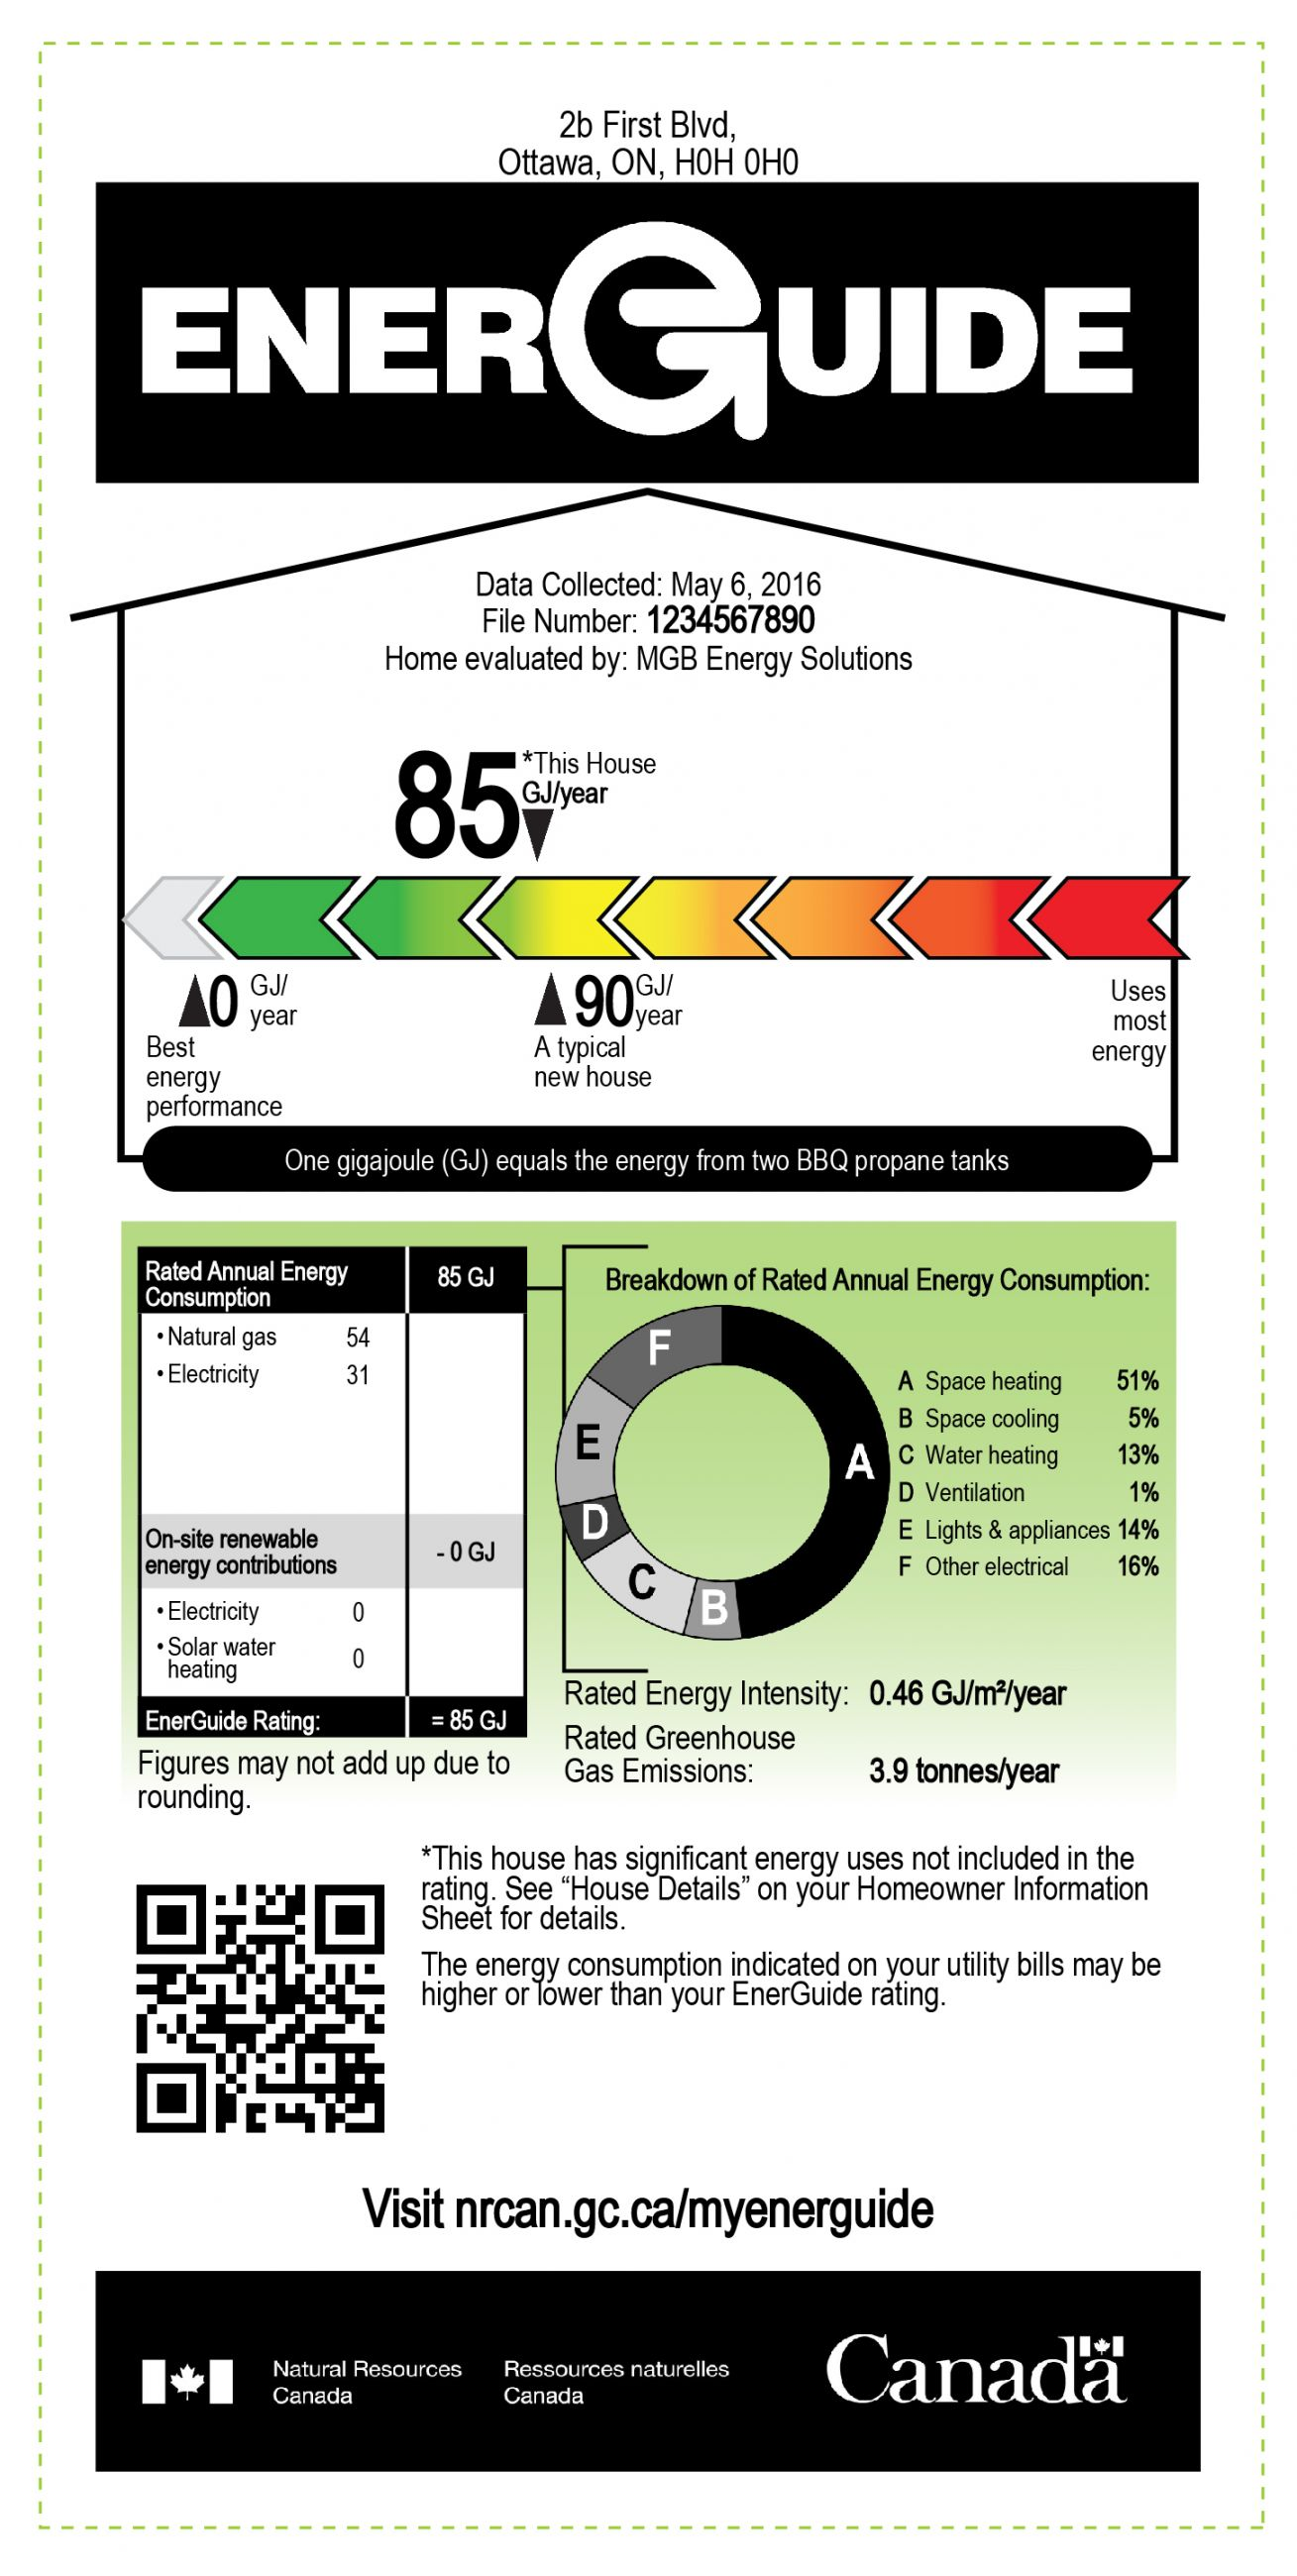 Sample Label EnerGuide Rating: Gigajoules per Year Scale